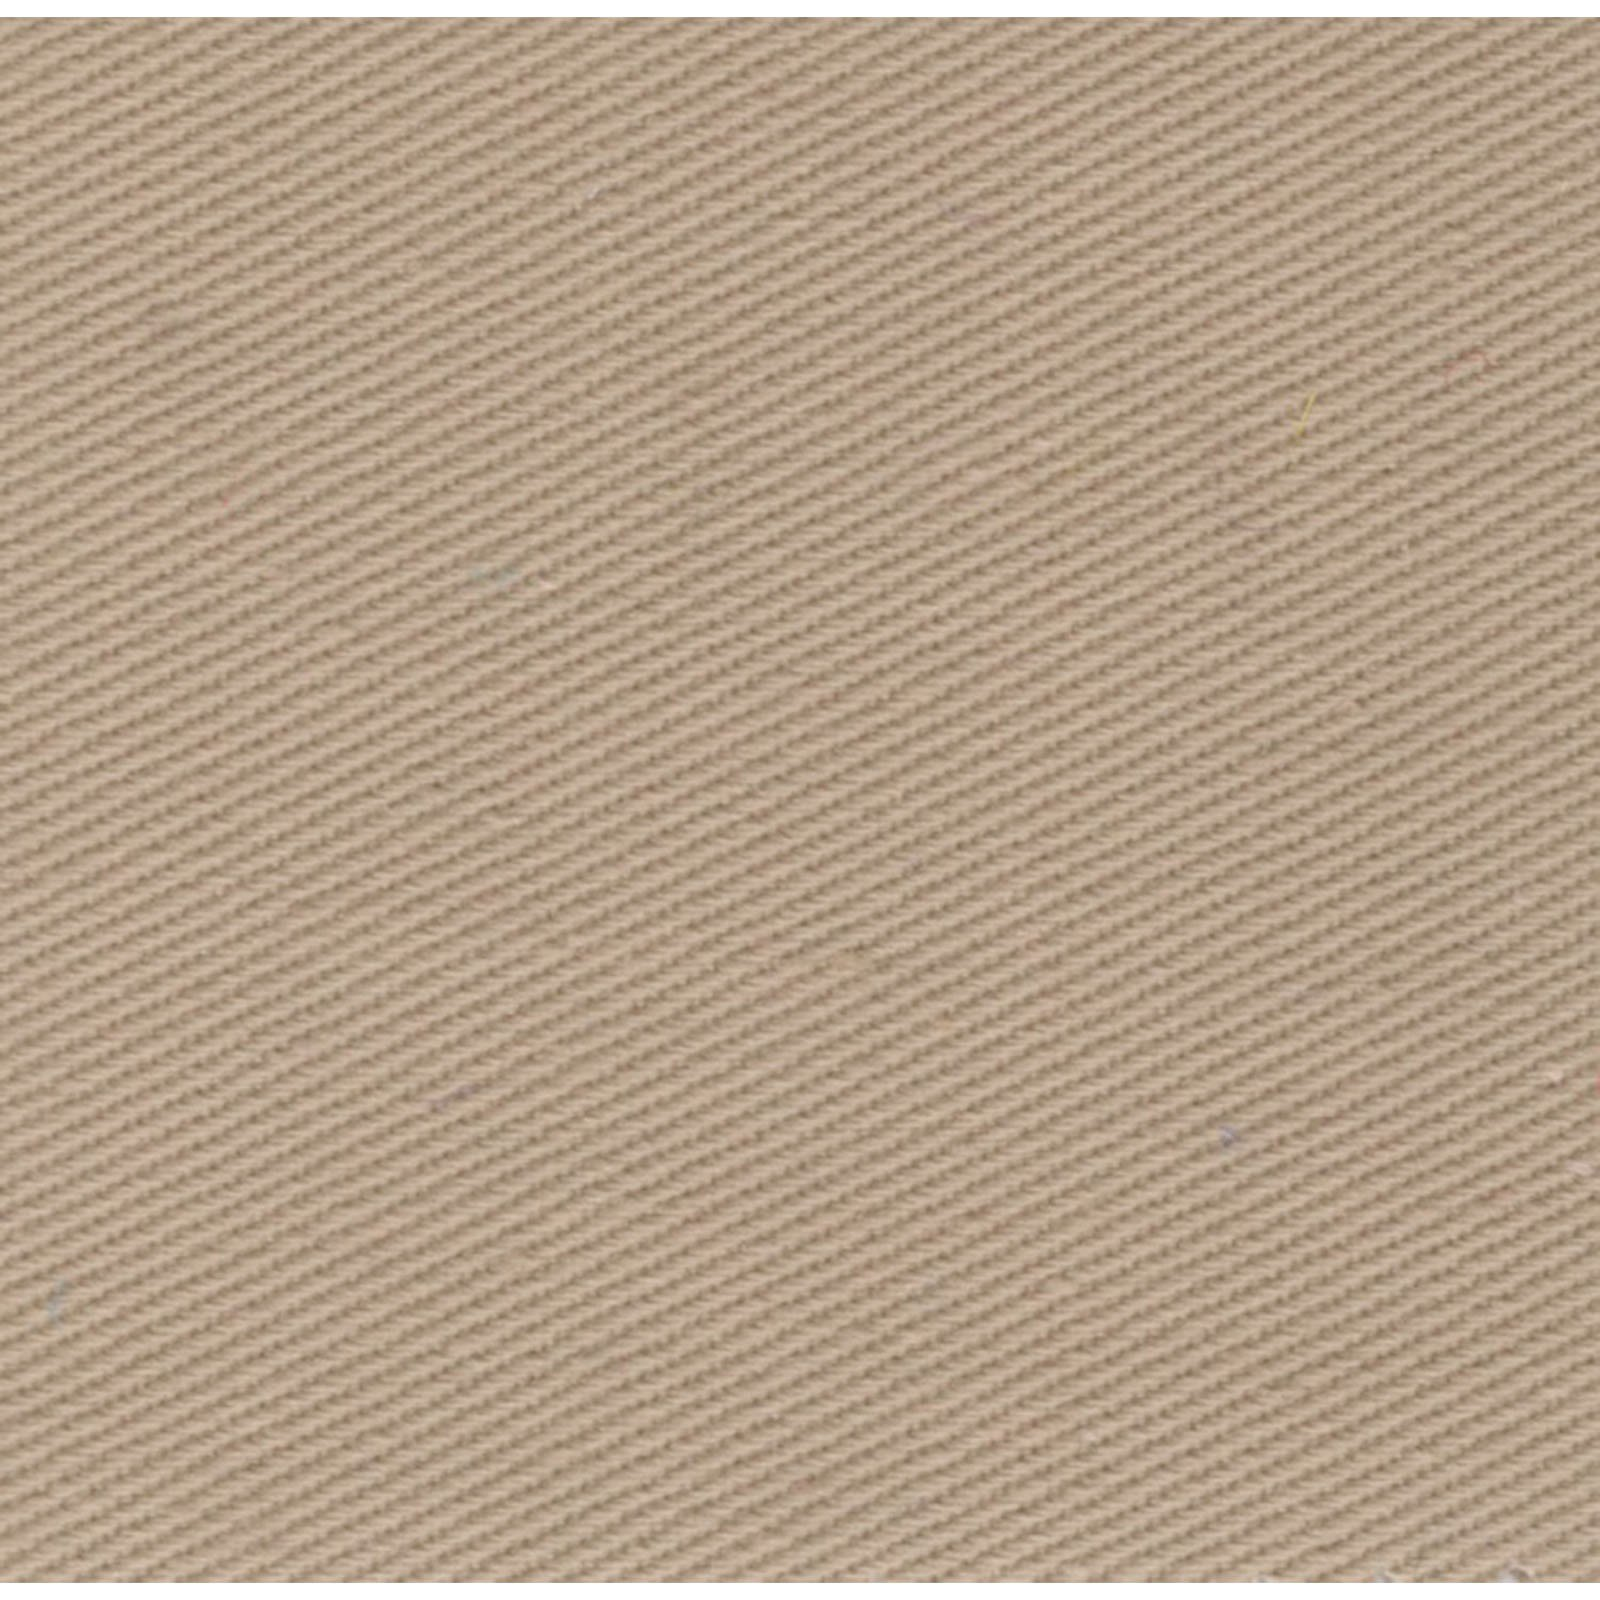 Westminster Twill - Sand<br/>James Thompson WES-511301